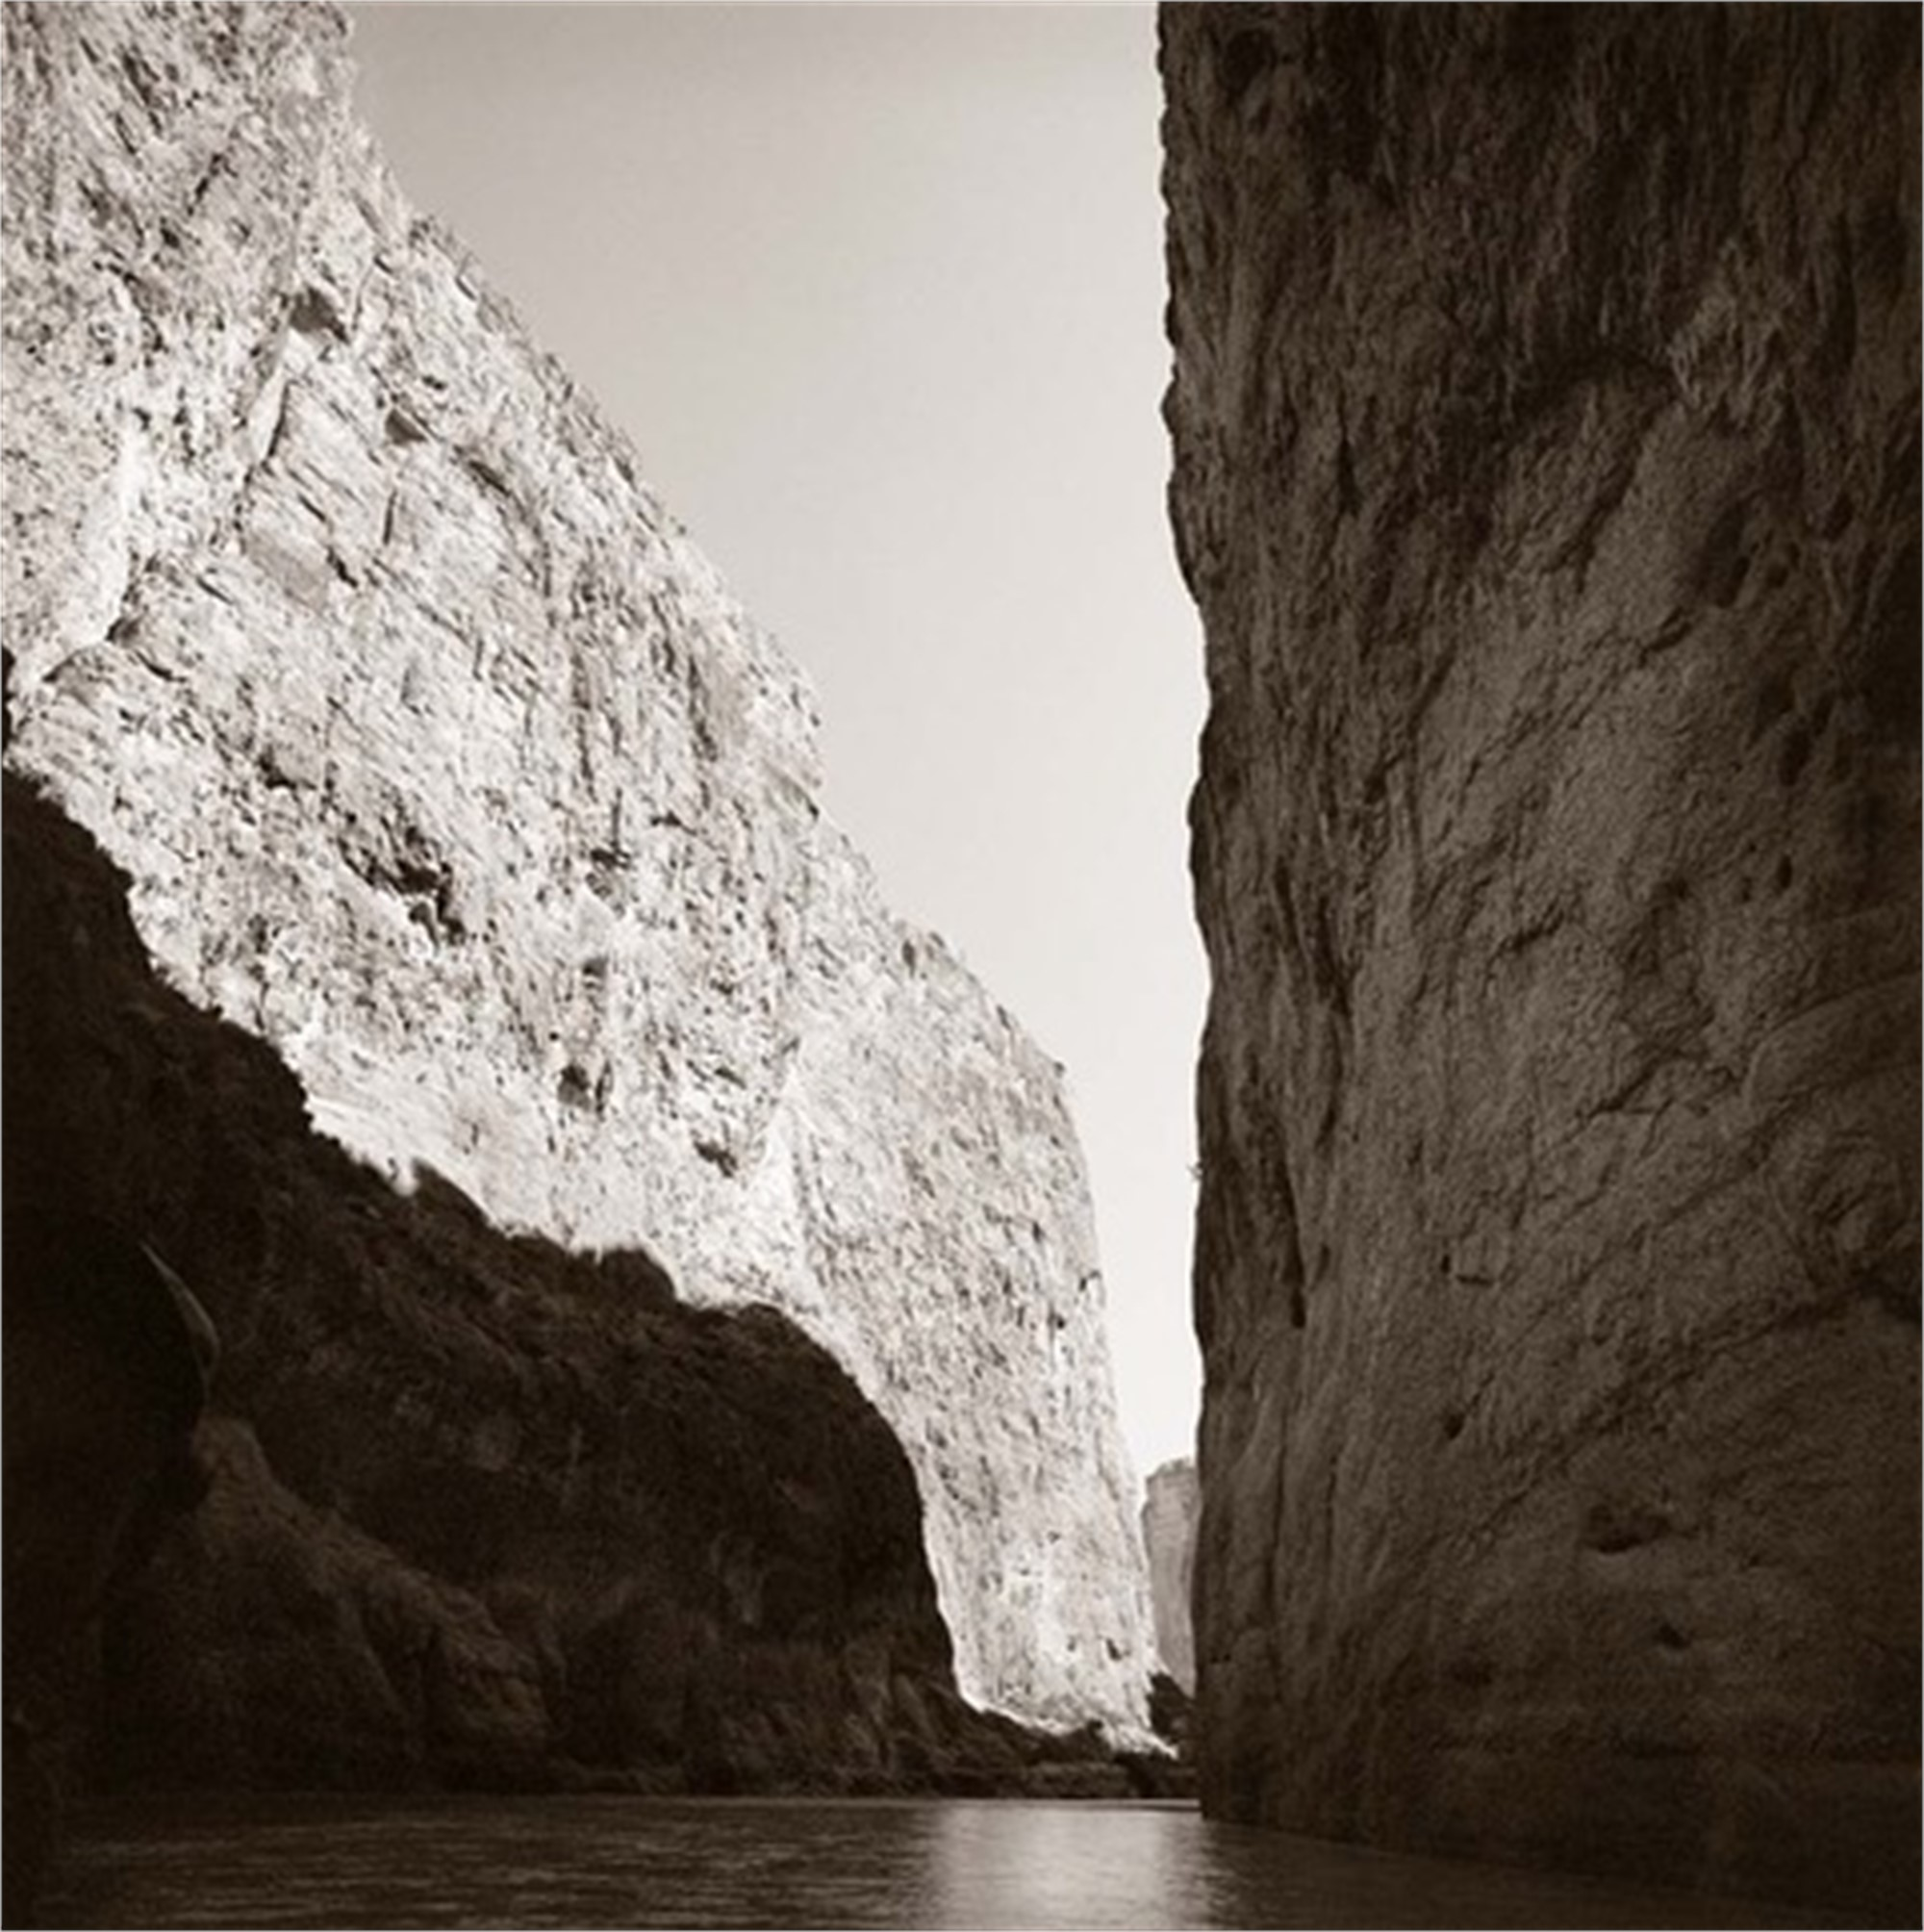 Santa Elena Canyon, Mouth of the Canyon by James H. Evans